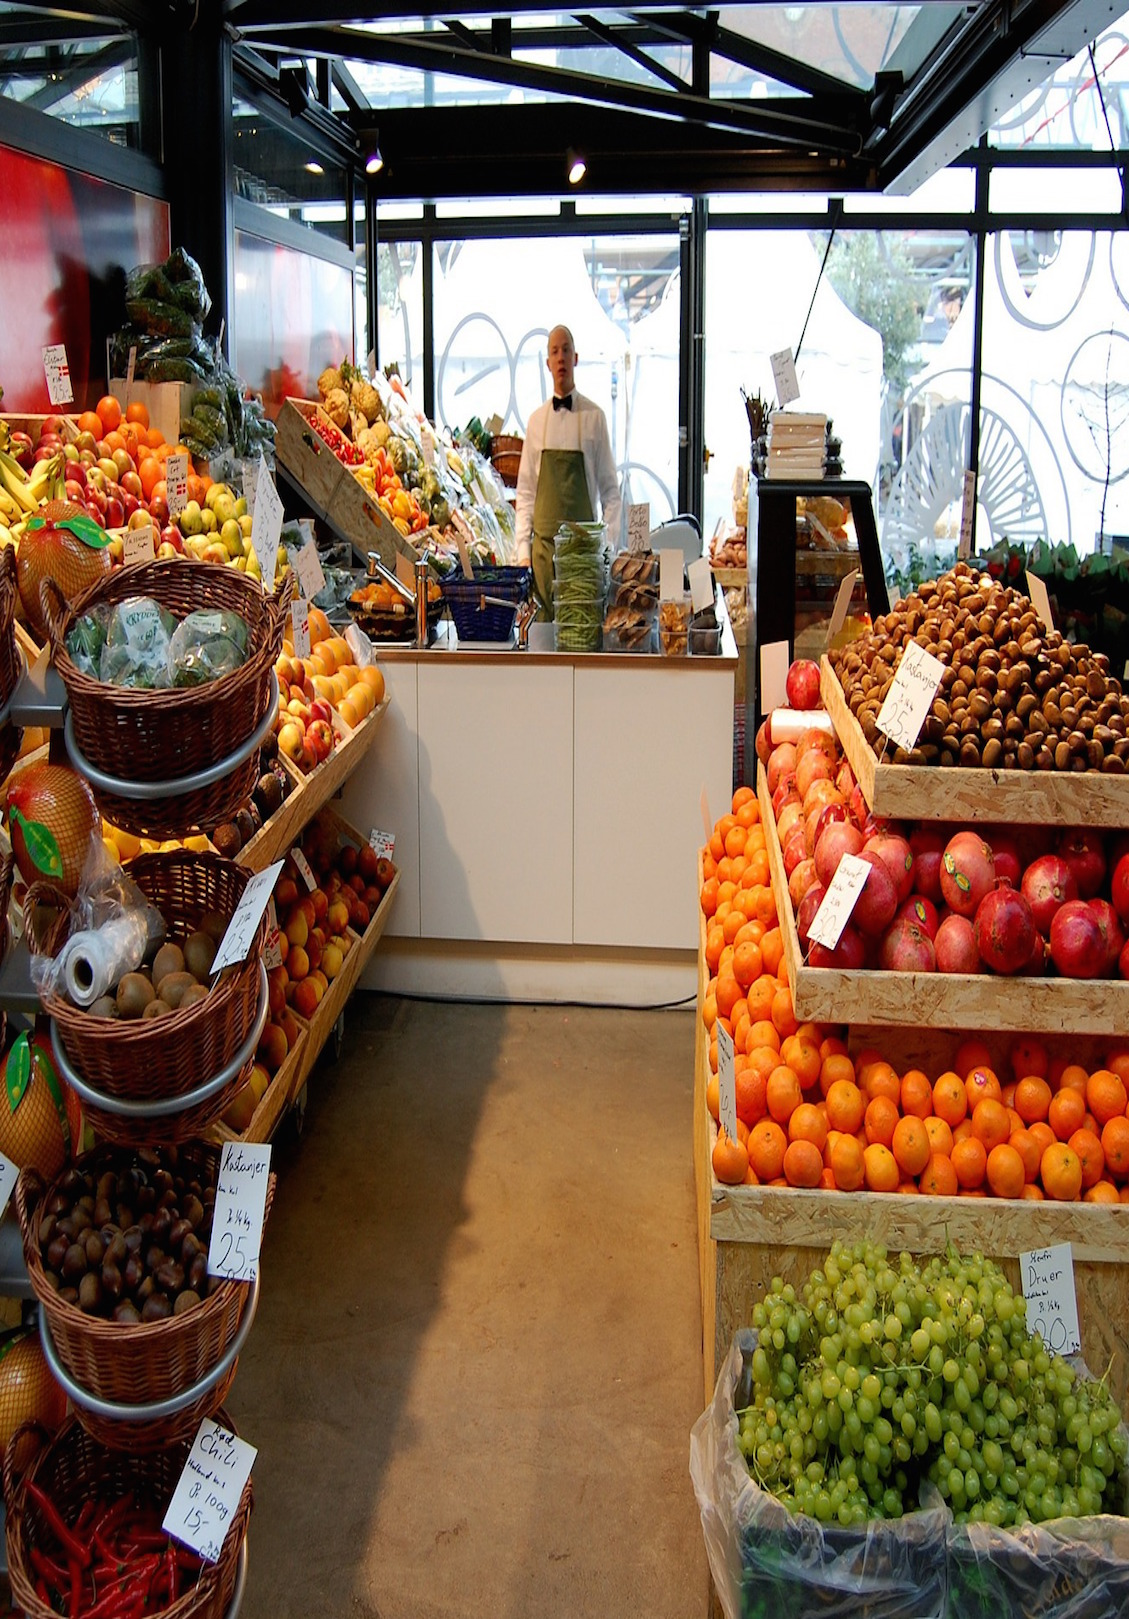 fruits-25266_1920 - copie